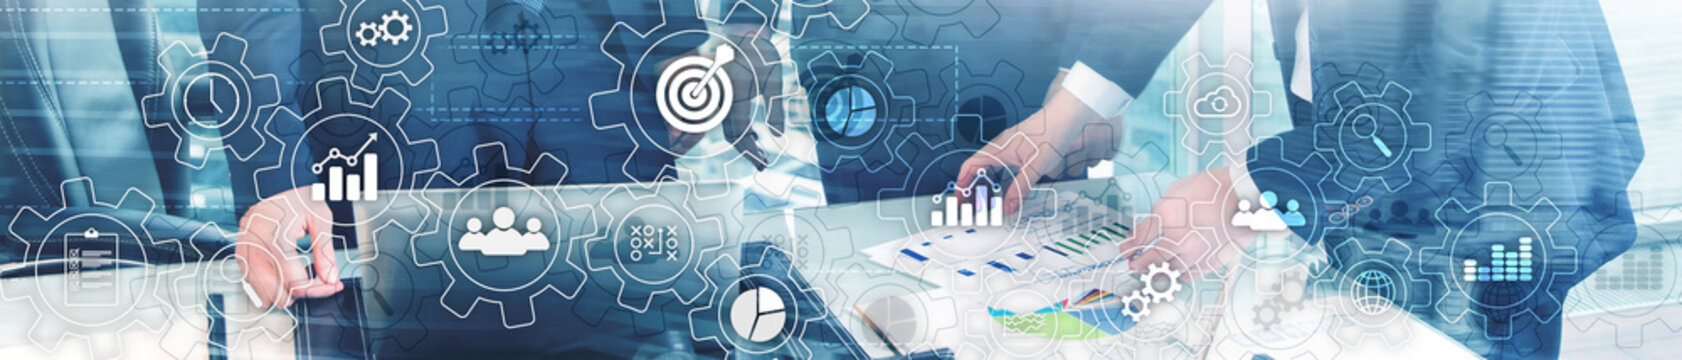 Business process abstract diagram with gears and icons. Workflow and automation technology concept. Website header banner.